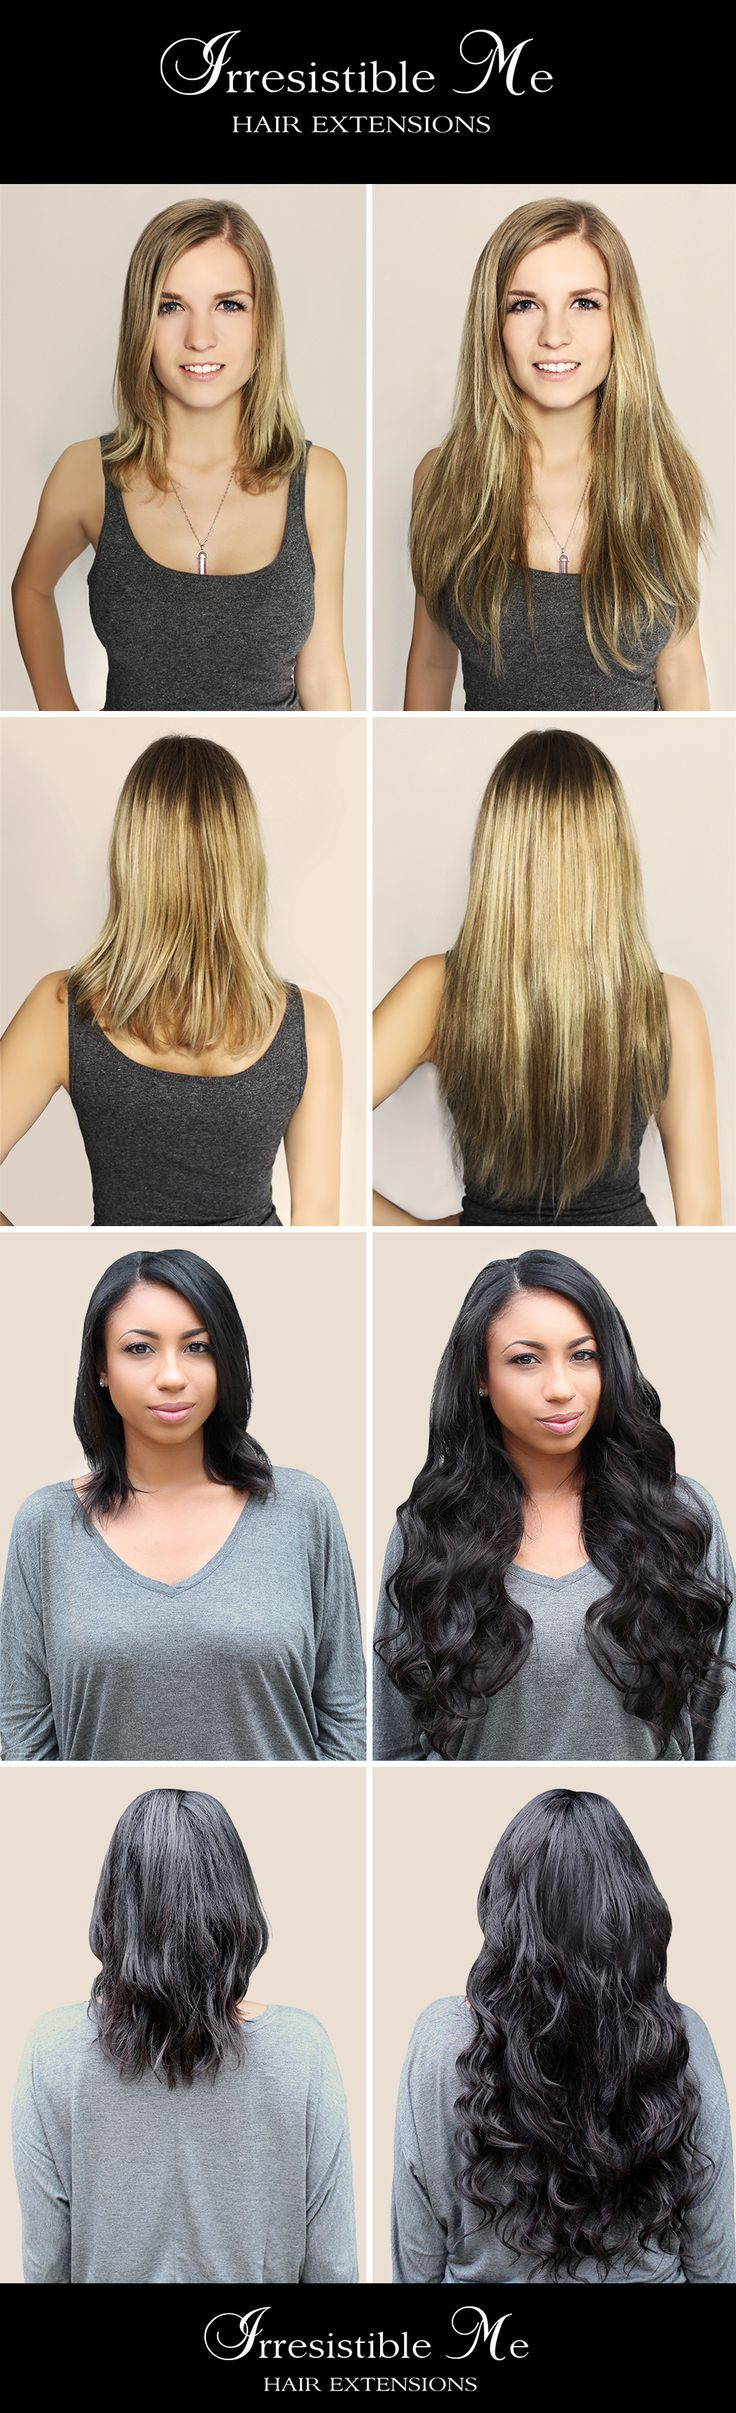 The secret to long, luscious hair: extensions. http://thepageantplanet.com/category/hair-and-makeup/